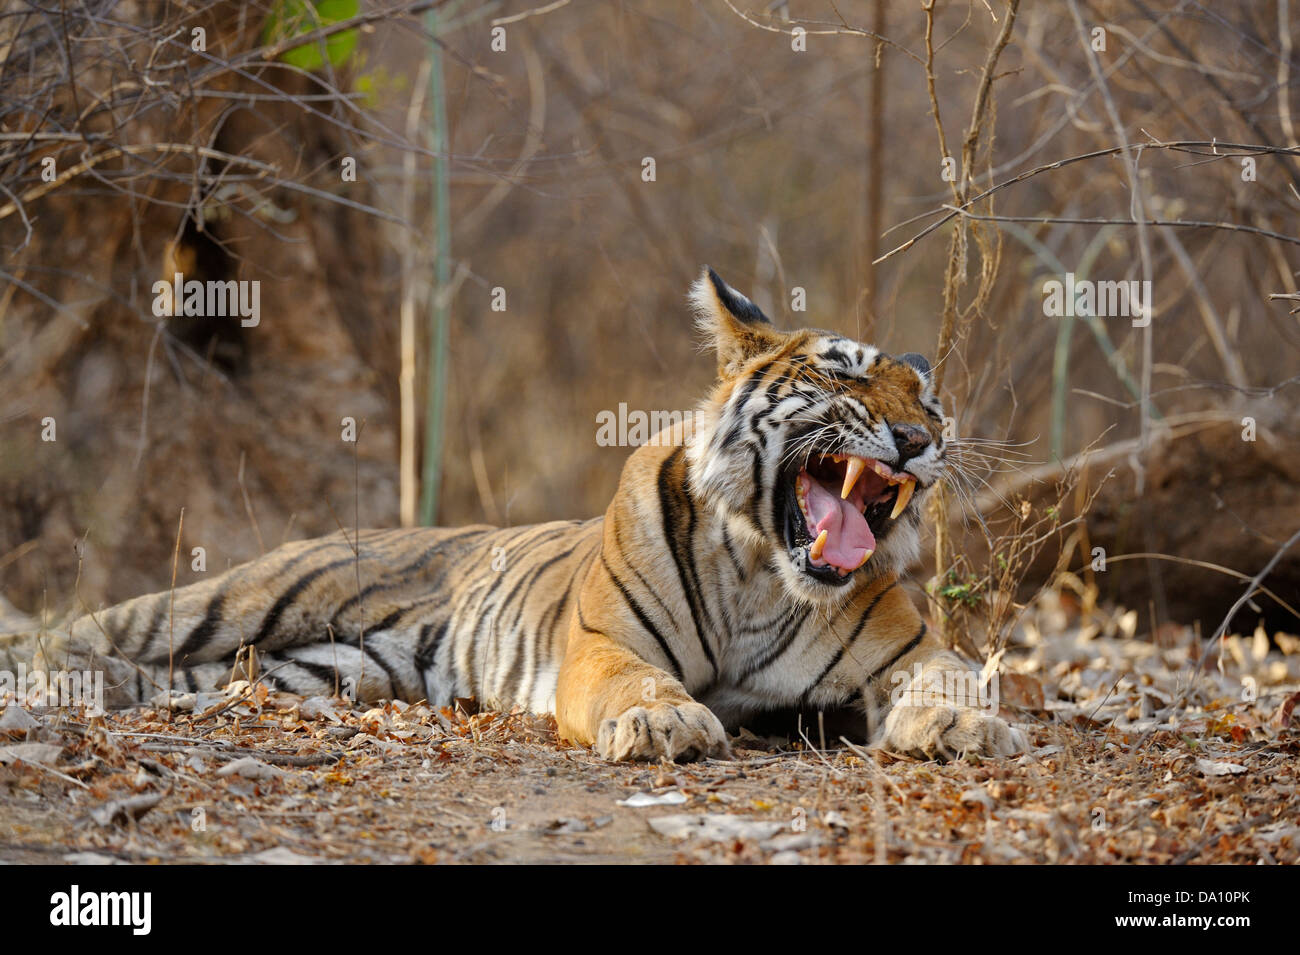 Wild tiger in Ranthambore tiger reserve - Stock Image